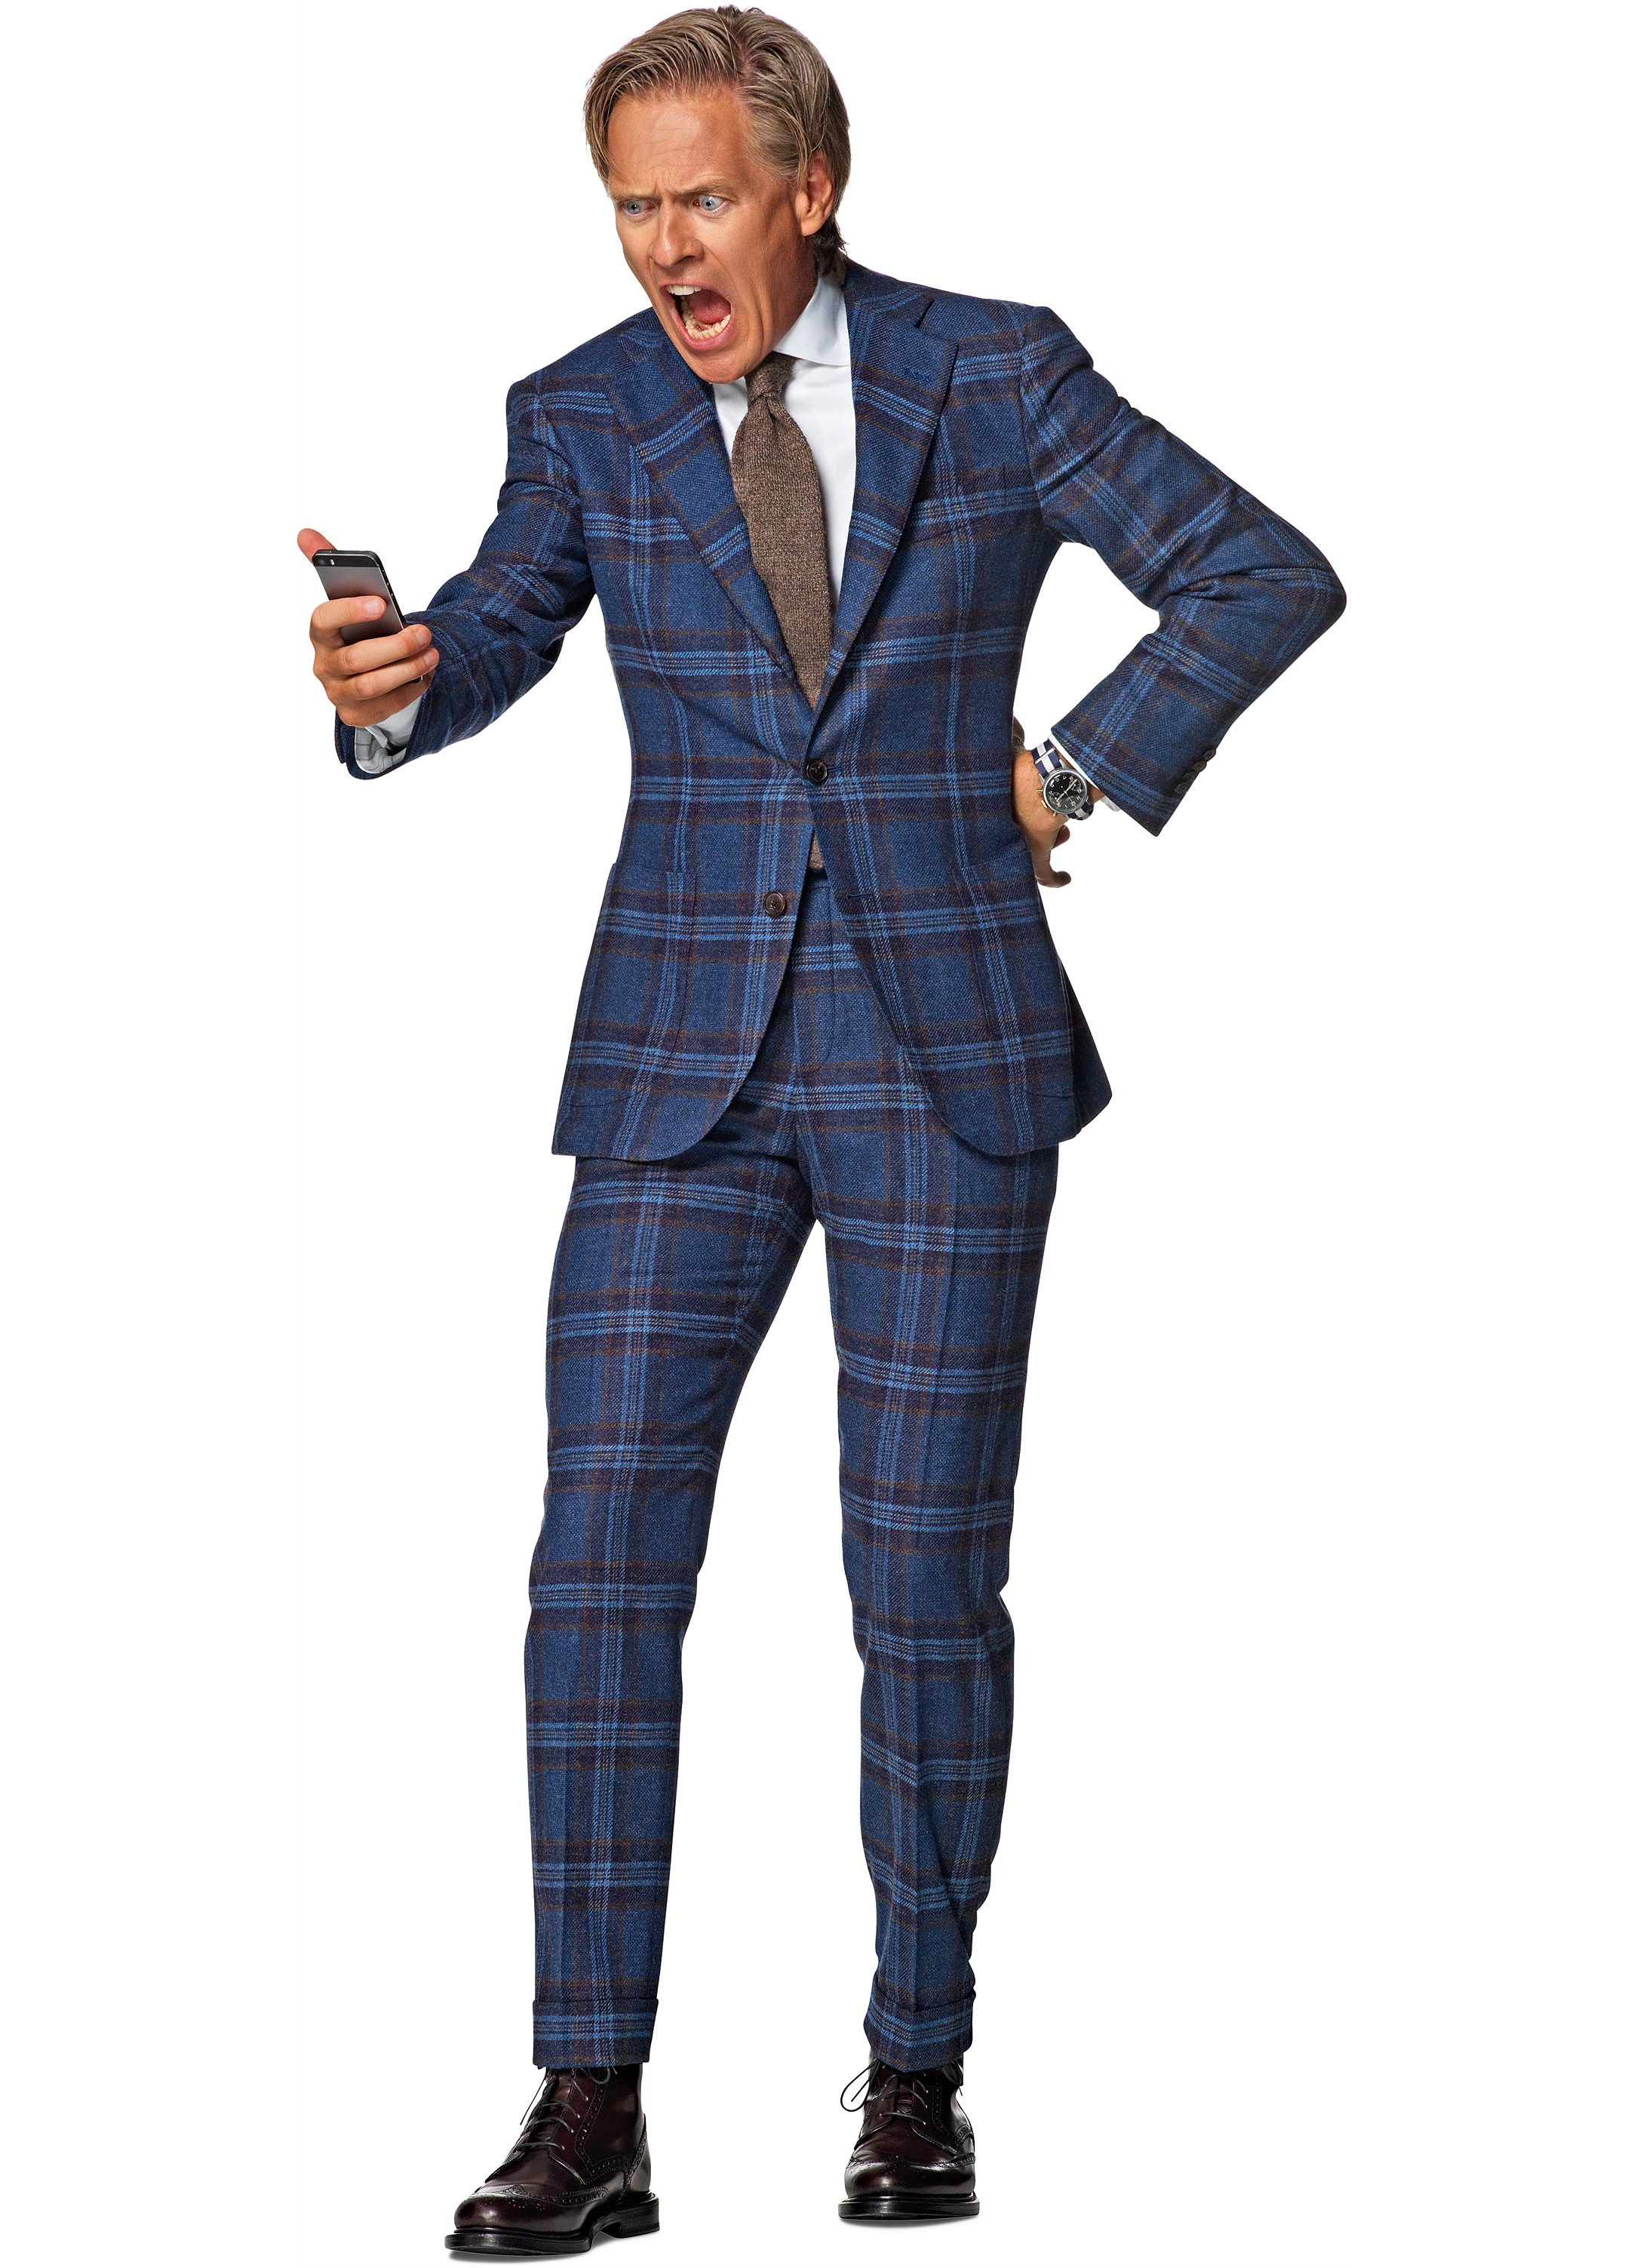 Suits_Blue_Check_Jort_P4013_Suitsupply_Online_Store_1.jpg